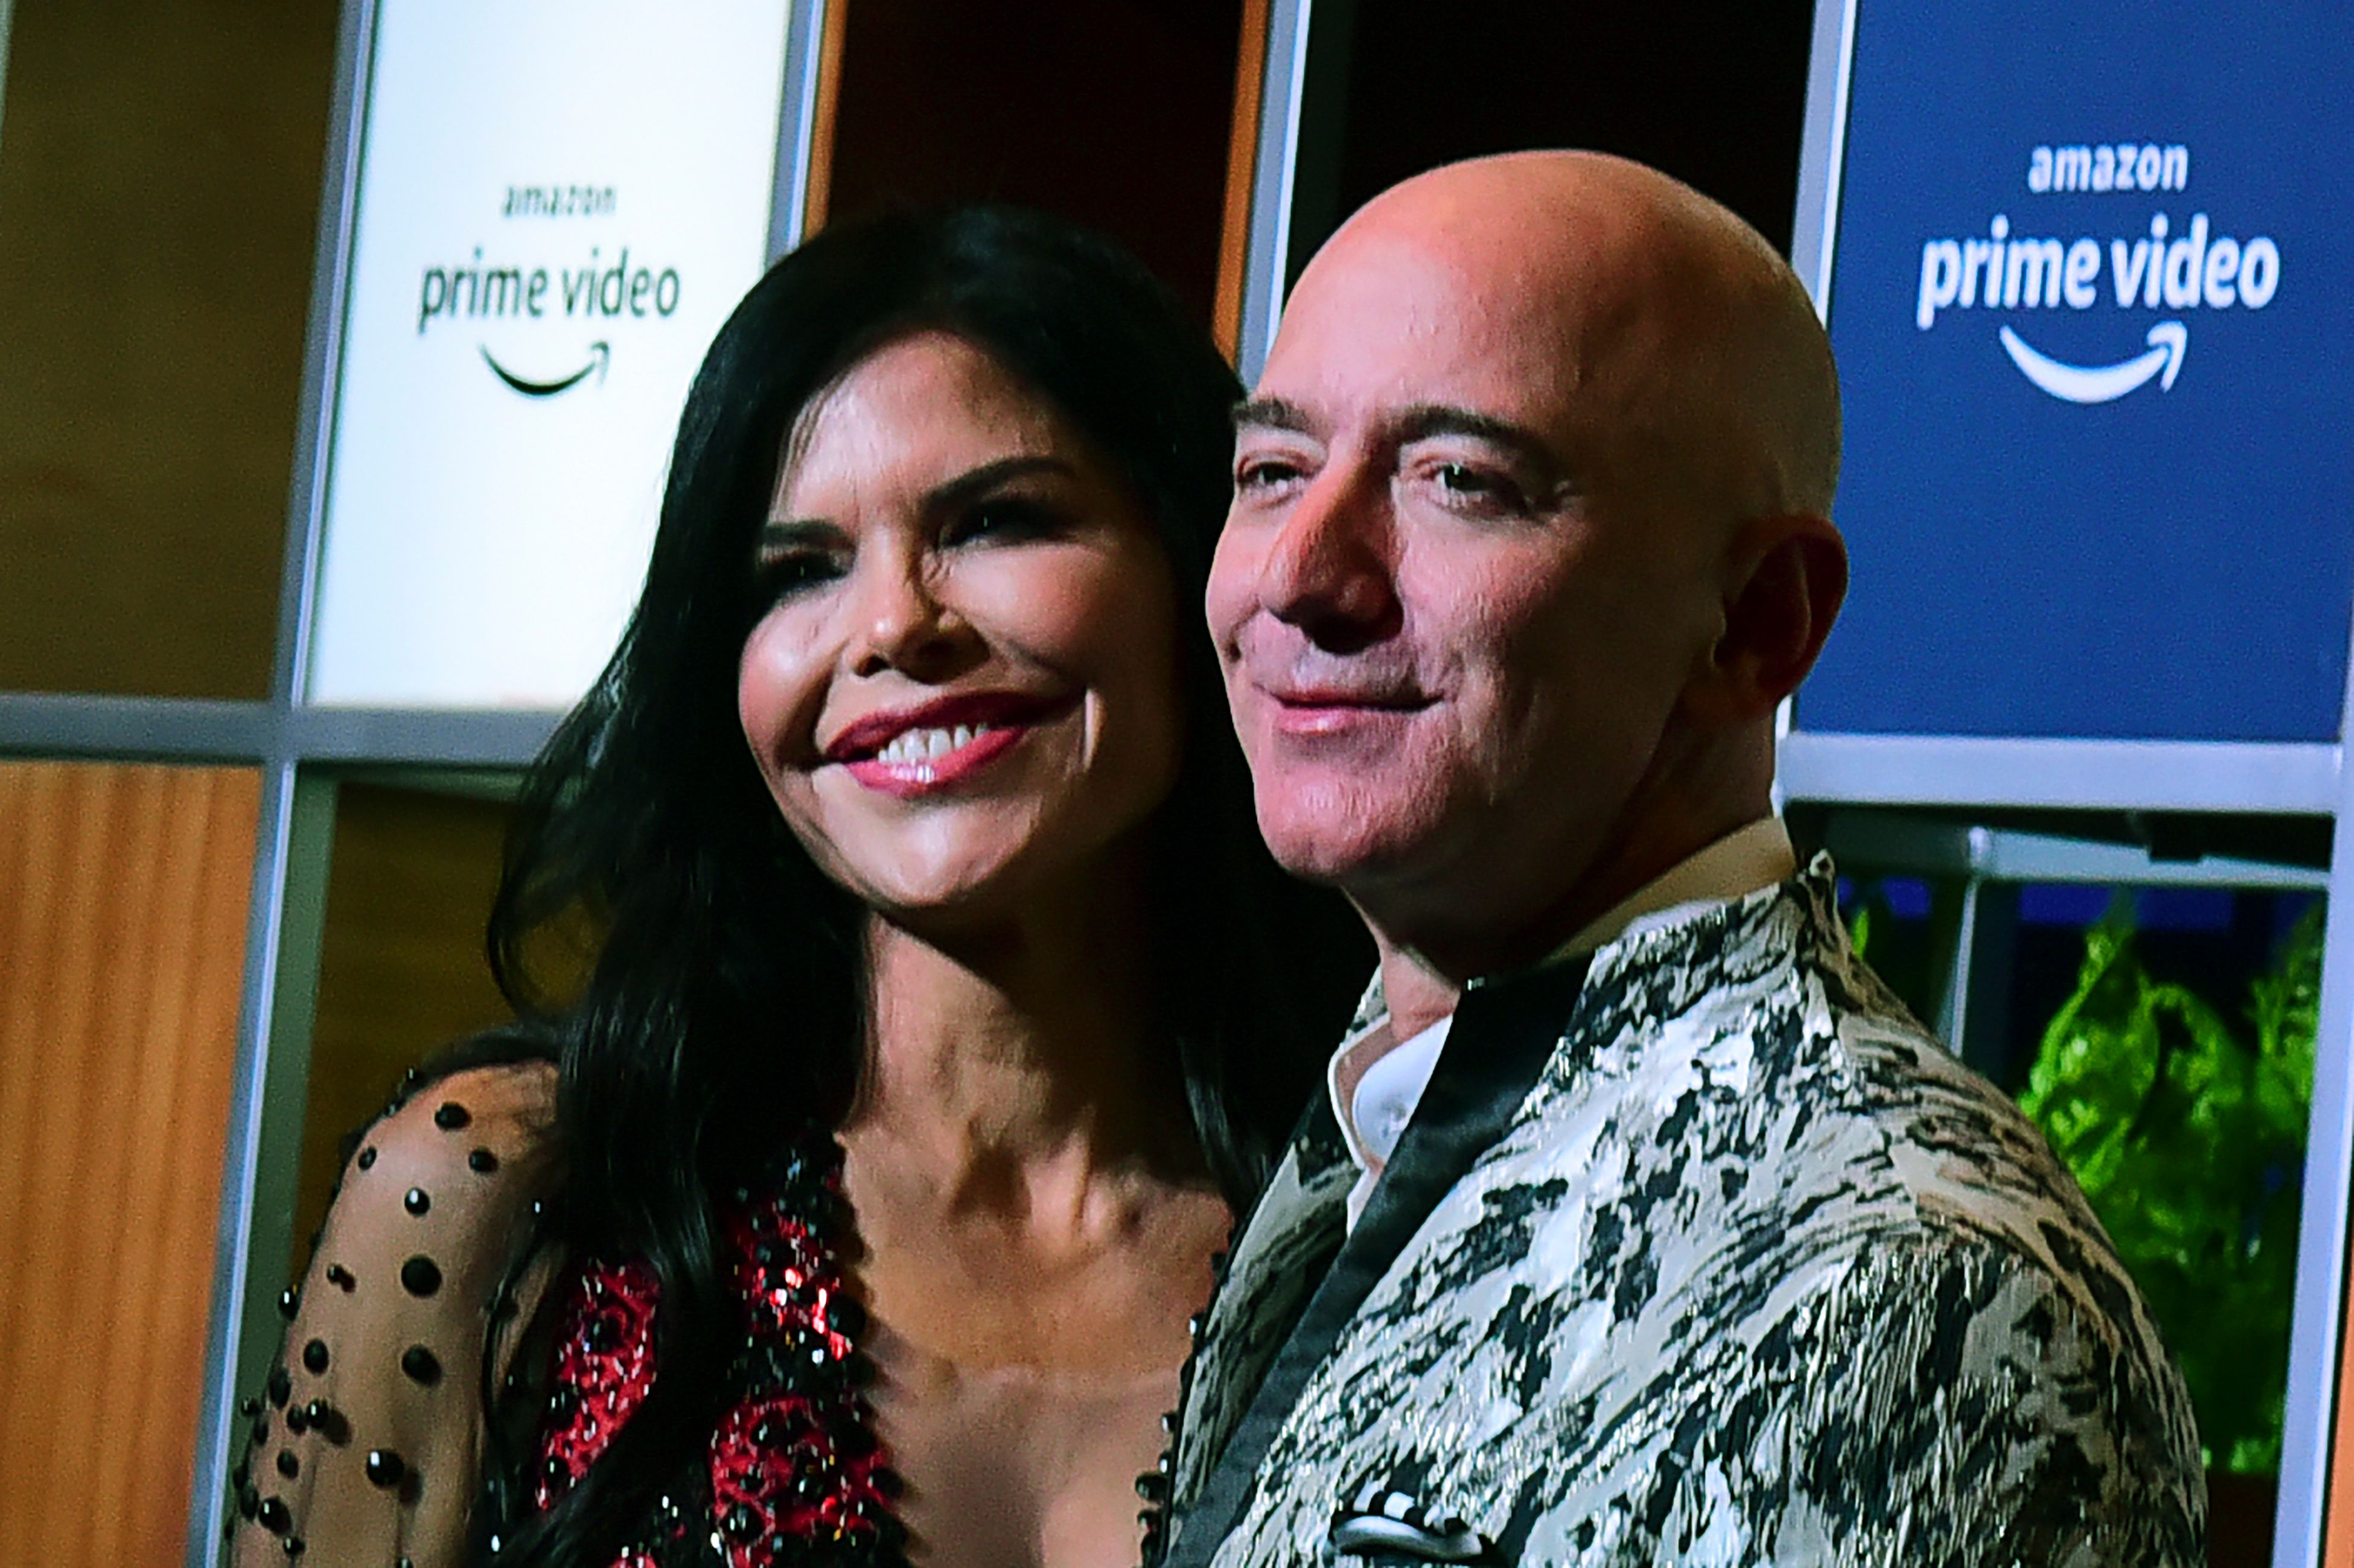 Amazon CEO Jeff Bezos poses for a photo at an Amazon event with his girlfriend, Lauren Sanchez.